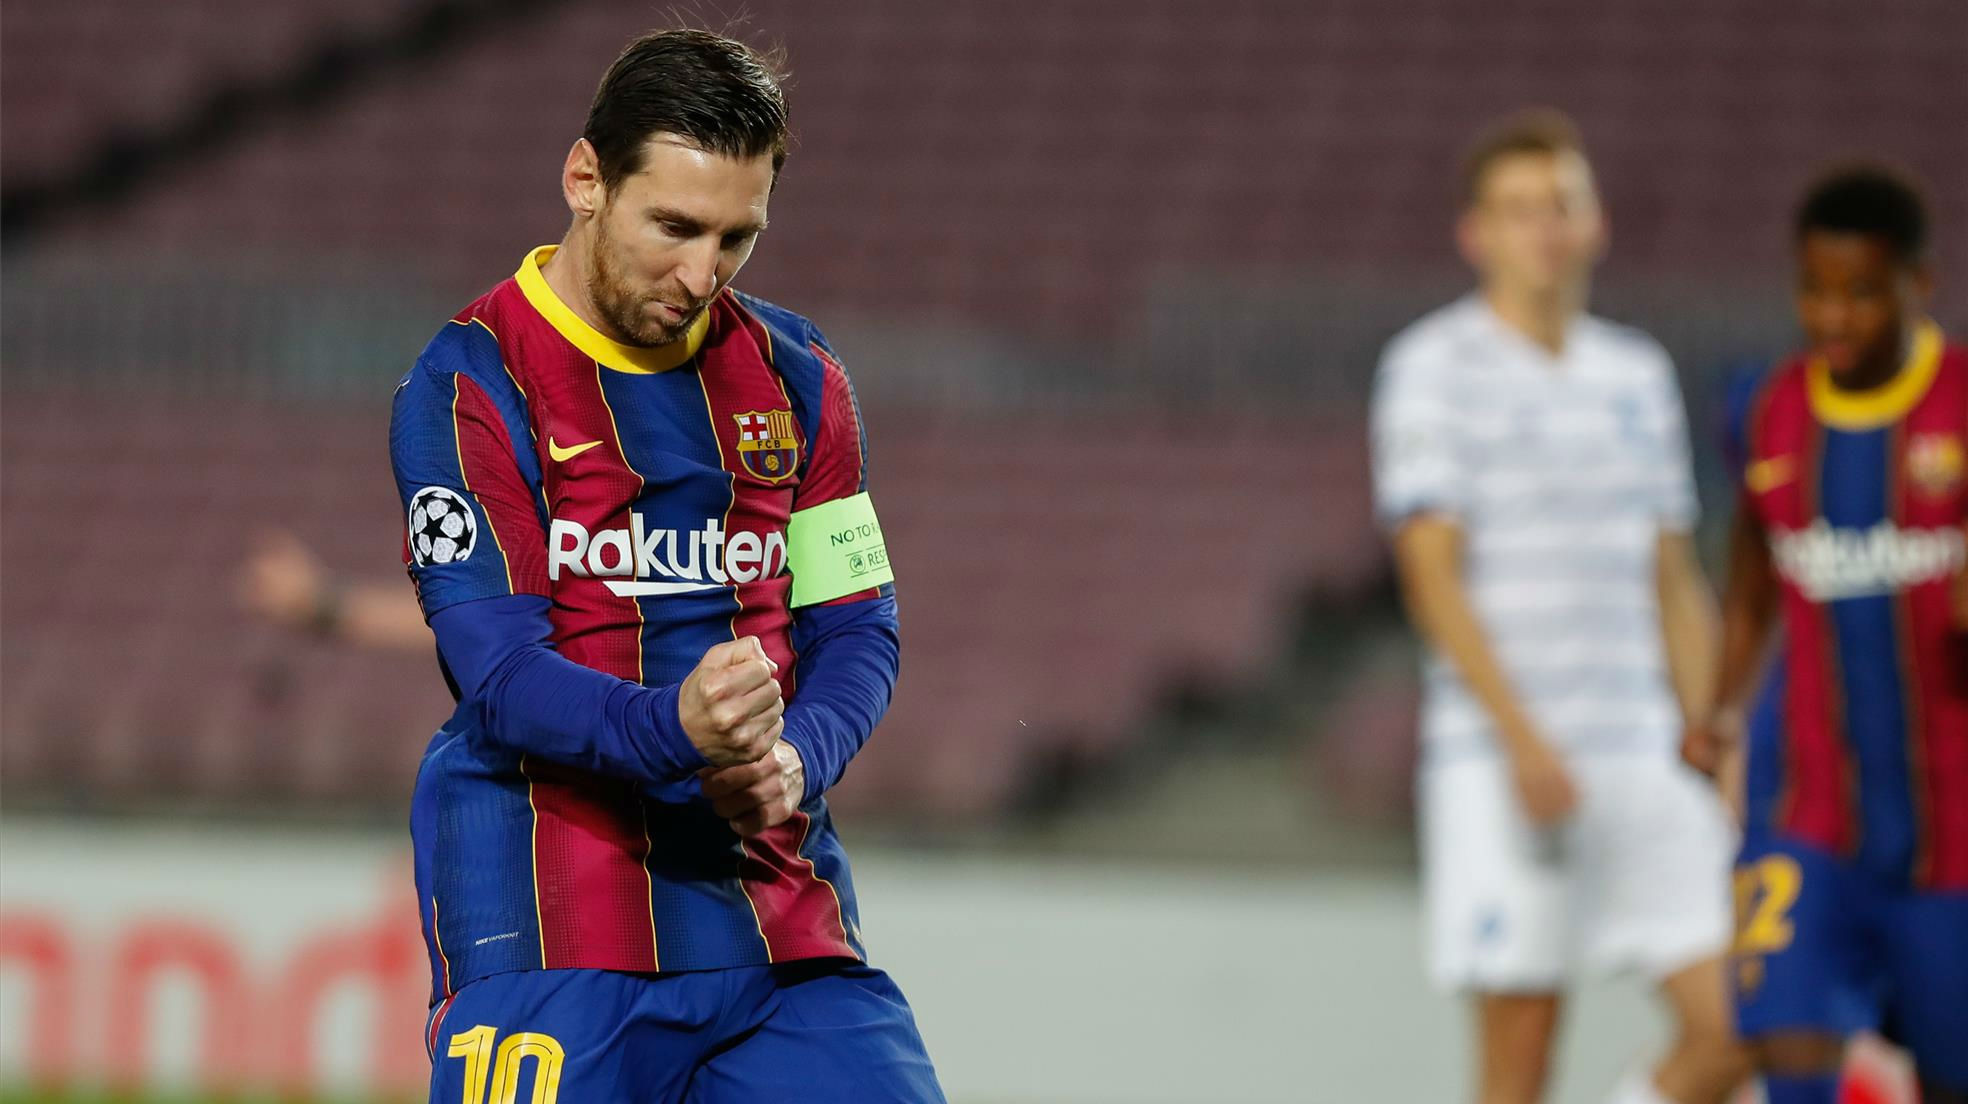 Leo Messi Has Scored 128 Doubles For Barcelona